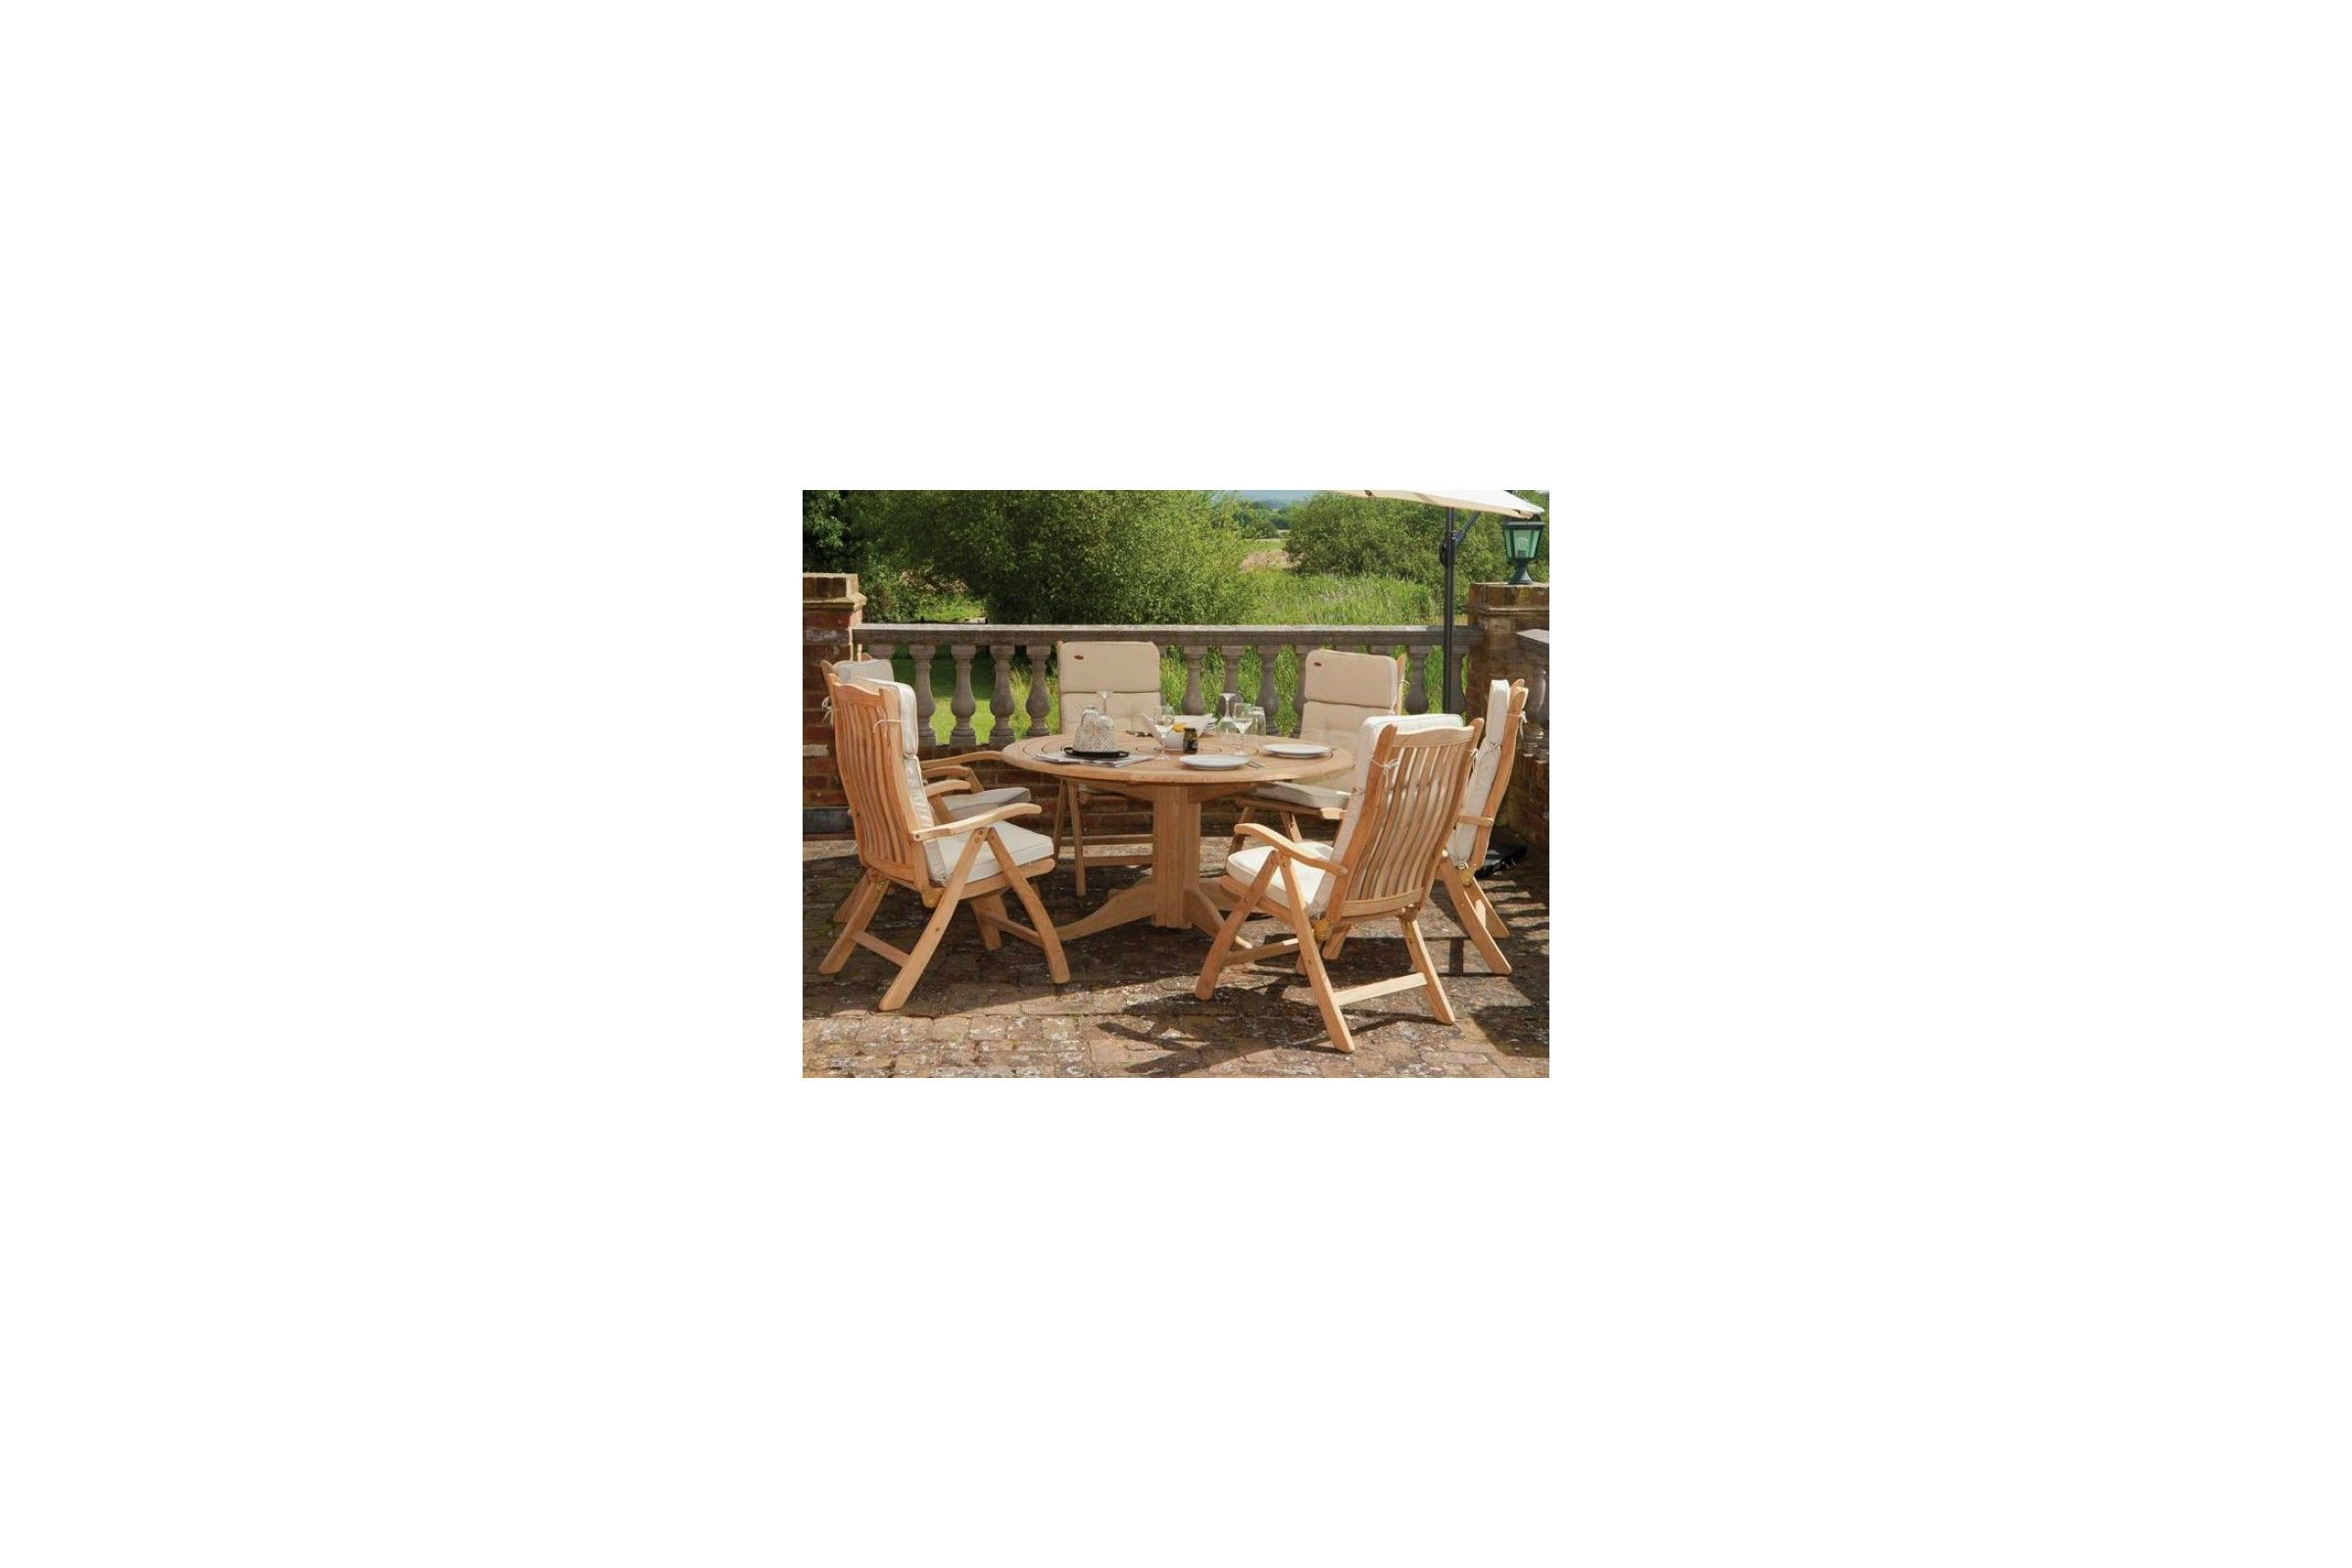 Table de jardin bois ronde | Optimisatrice